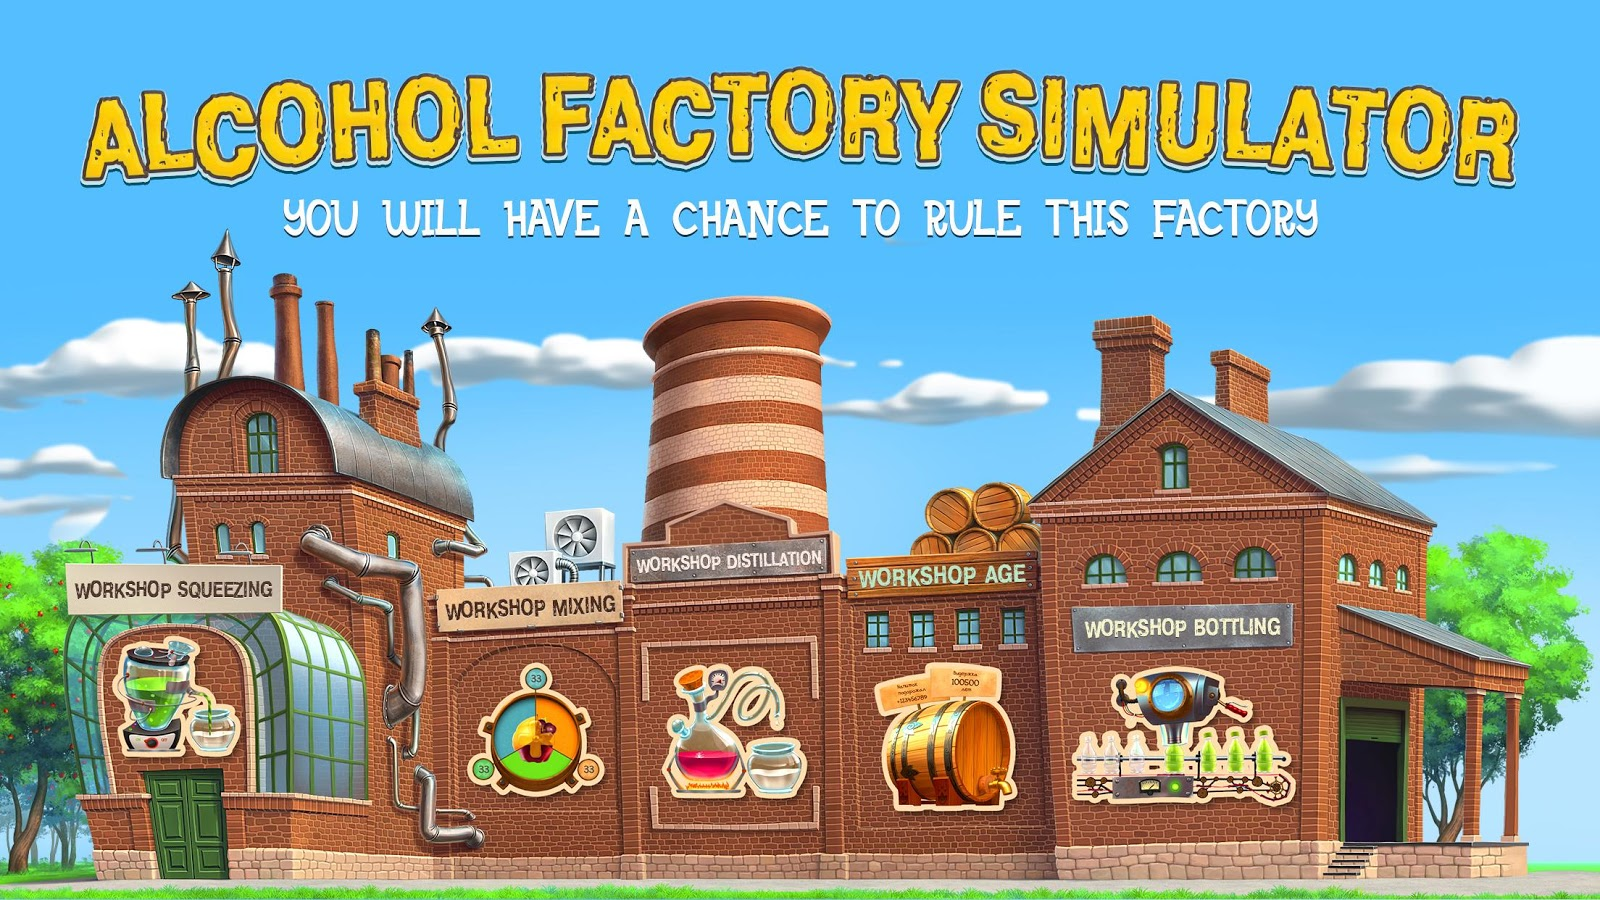 Alcohol Factory Simulator Screenshot 5